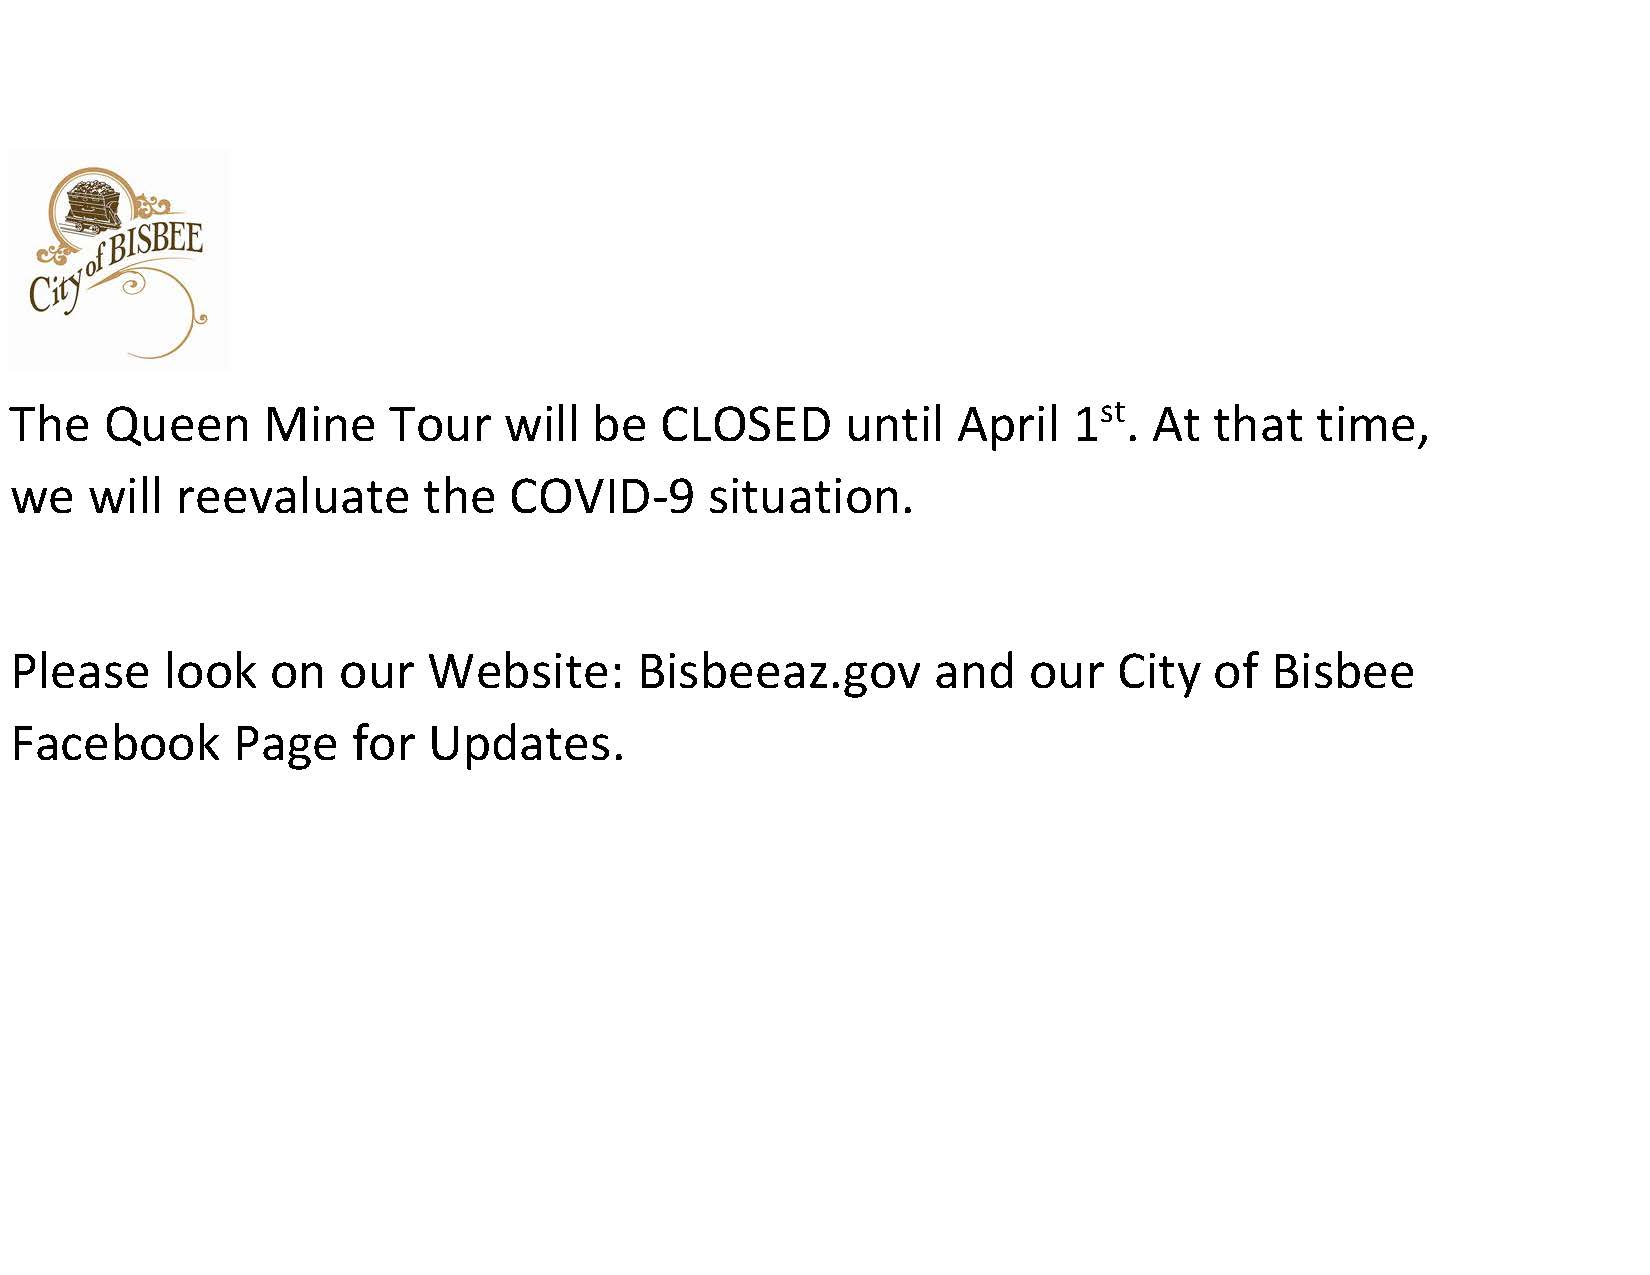 The Queen Mine Tour will be CLOSED until April 1st